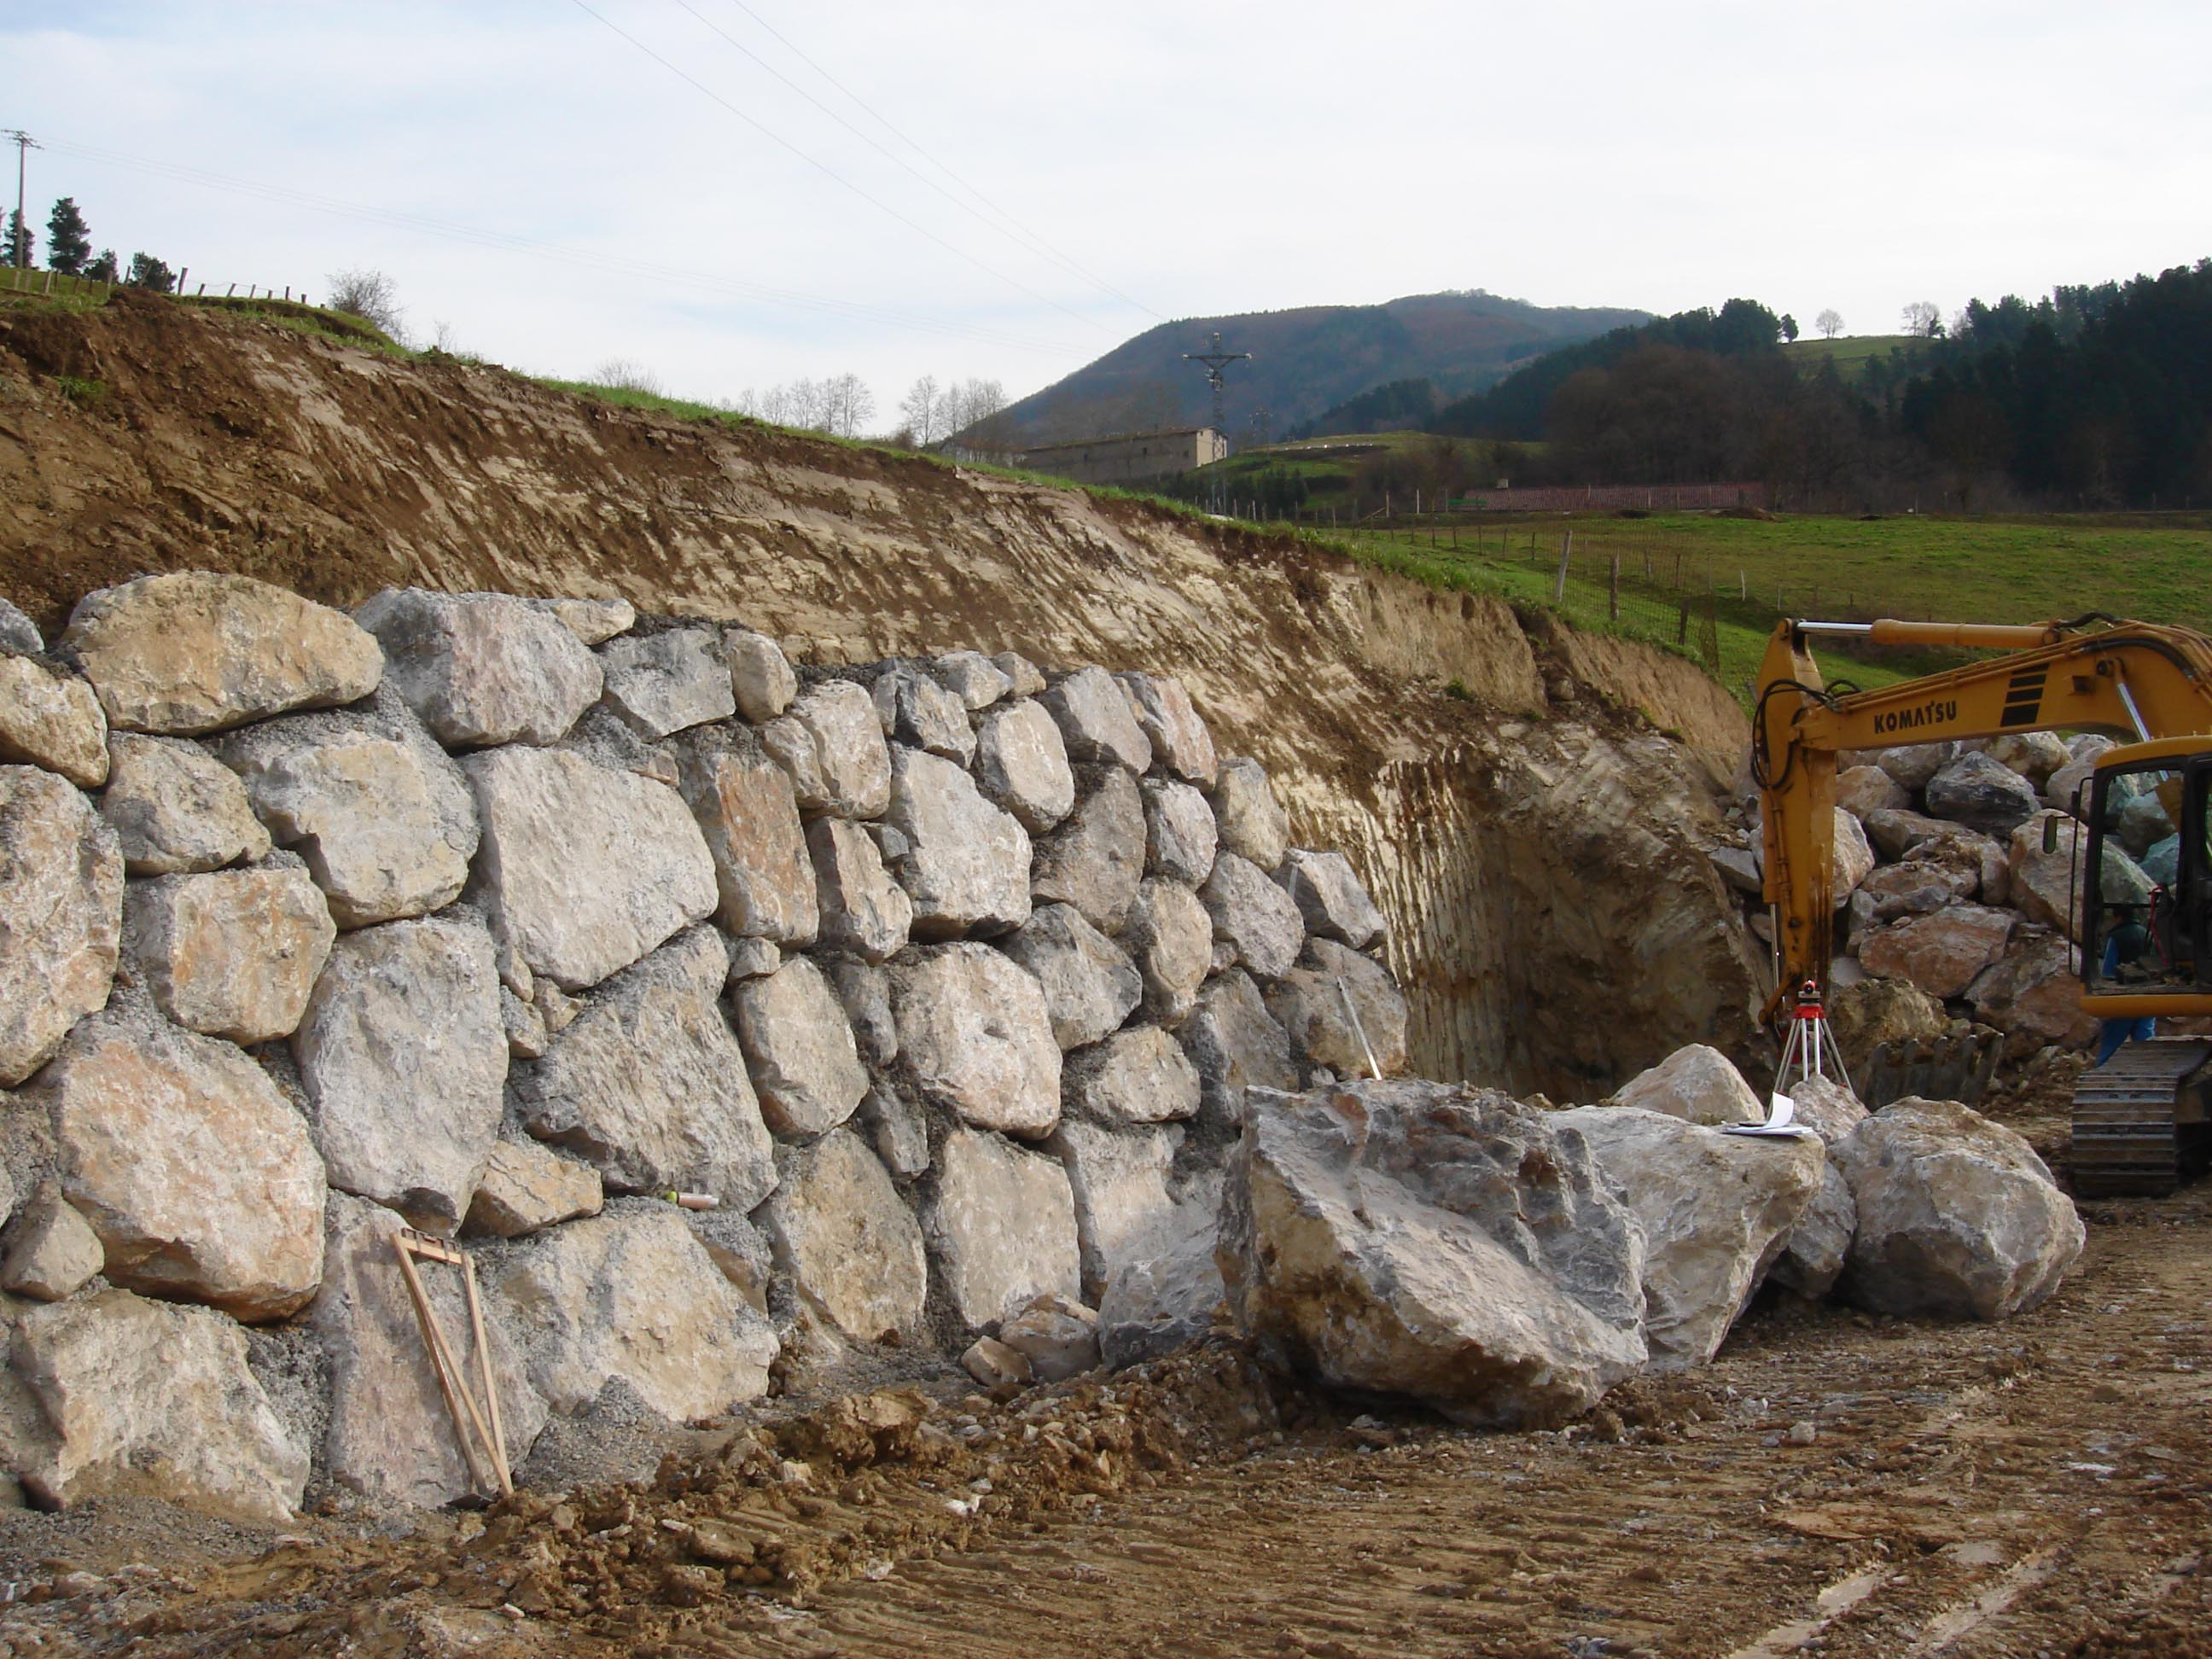 Installing retaining wall blocks